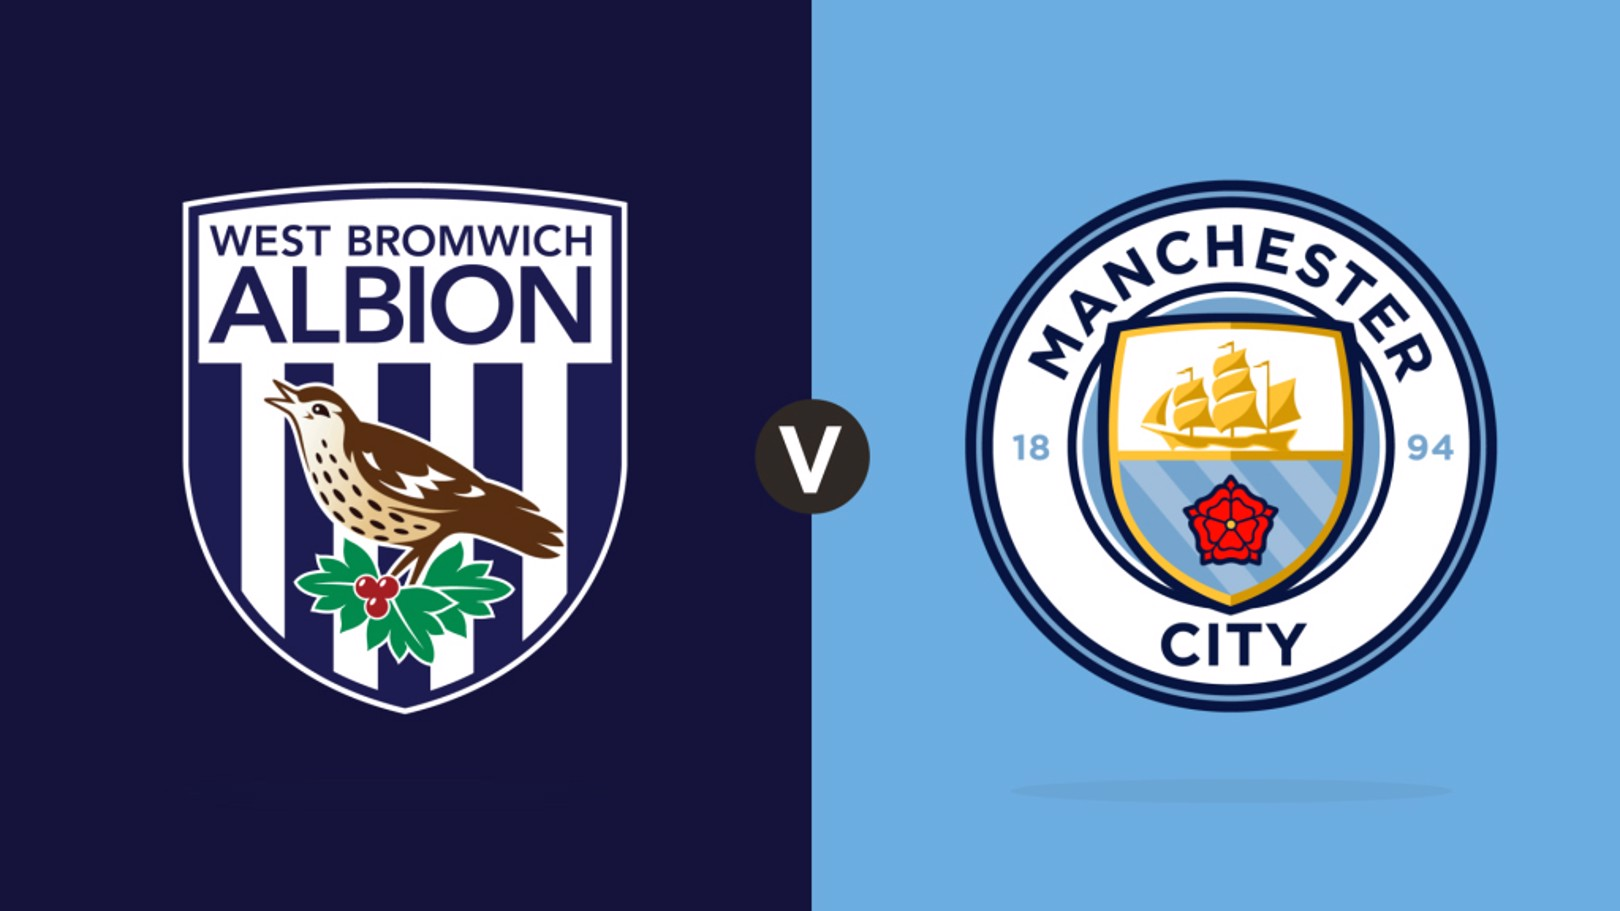 West Brom v Man City Live Coverage NOW